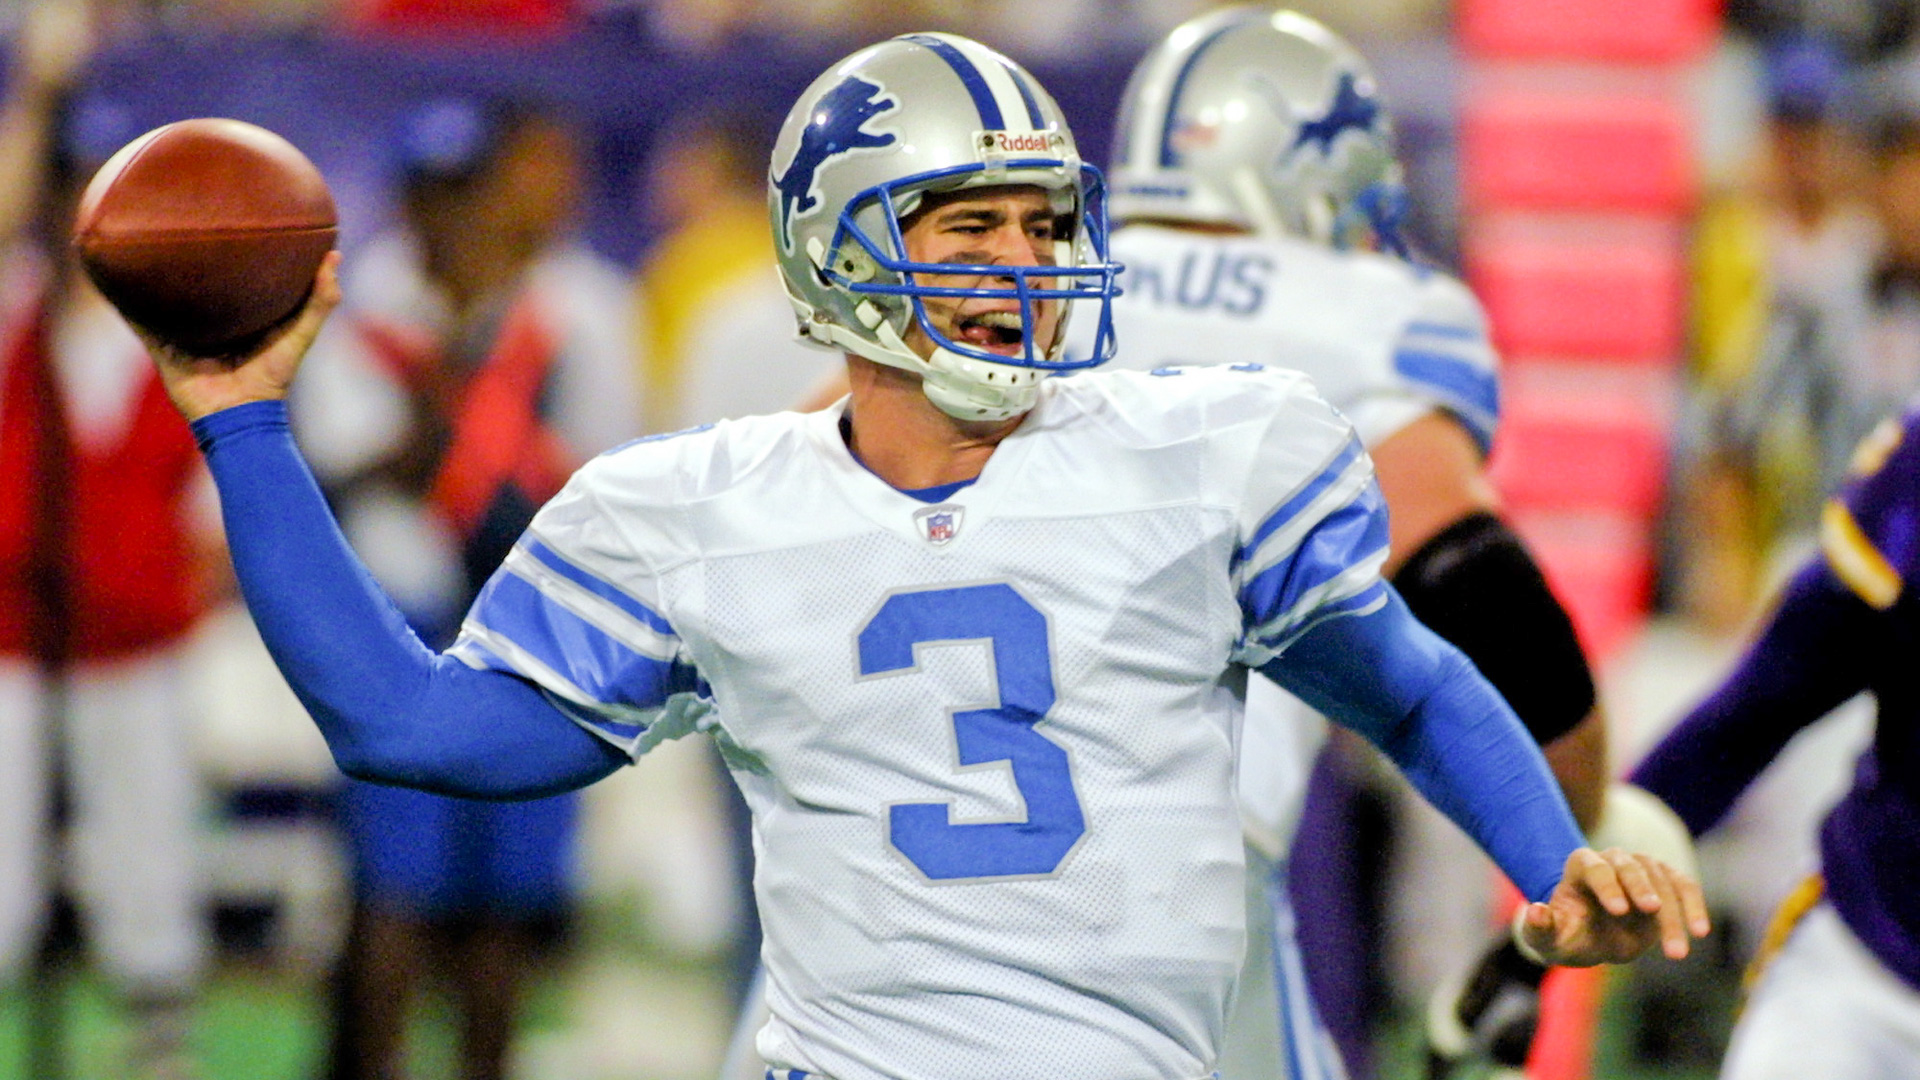 WorstNFLDraft-Joey Harrington-030514-AP-FTR.jpg